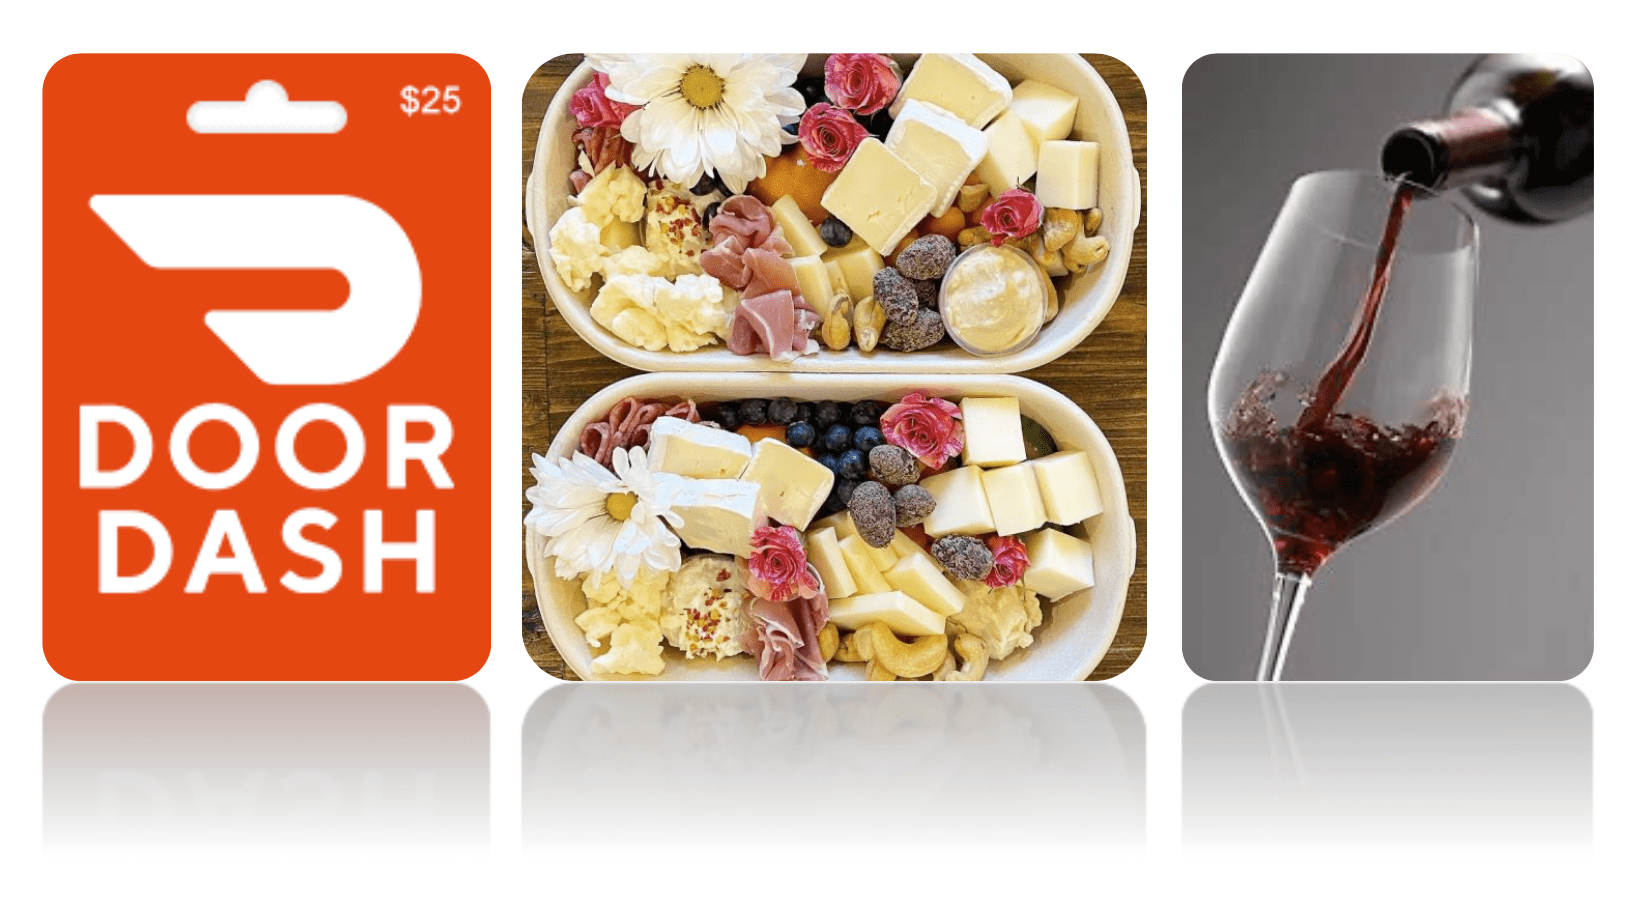 Special deliveries to build remote work culture: Door dash logo, charcuterie box, glass of wine